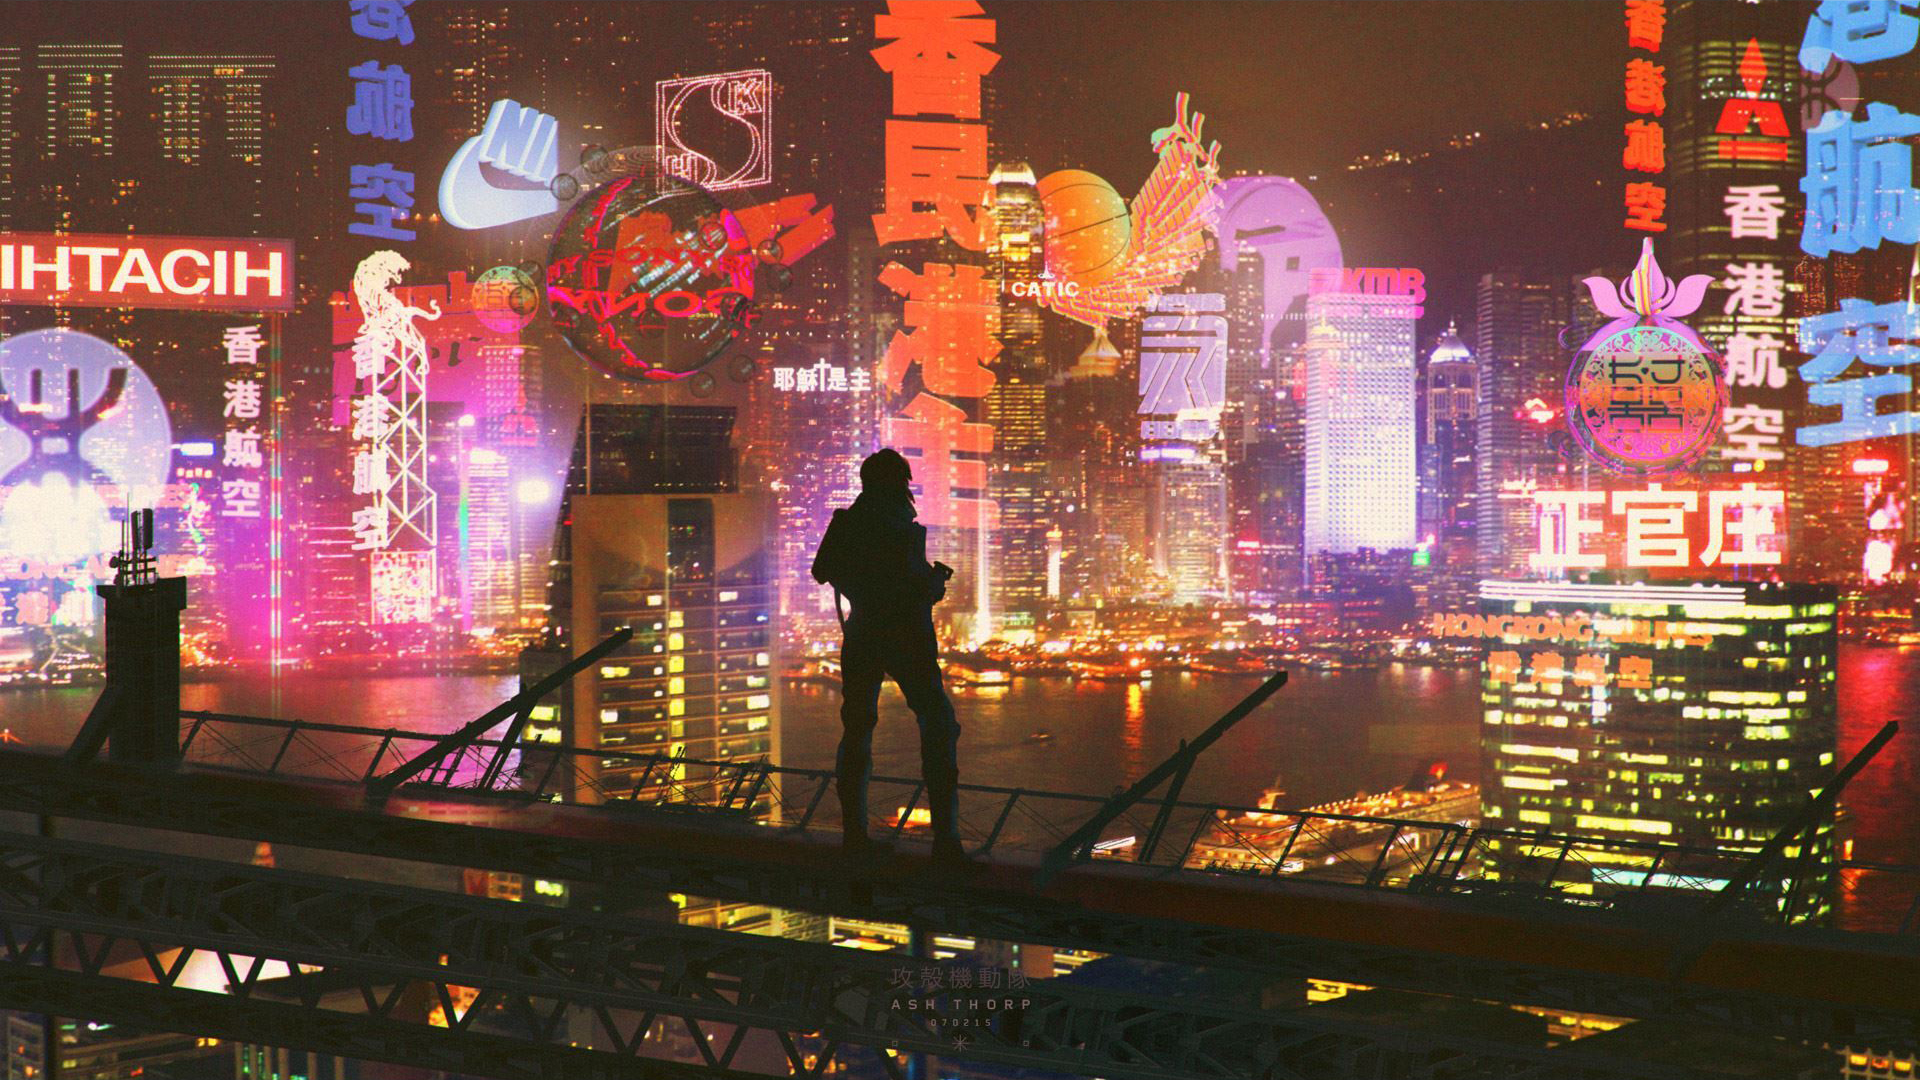 General 1920x1080 Ghost in the Shell cityscape cyberpunk